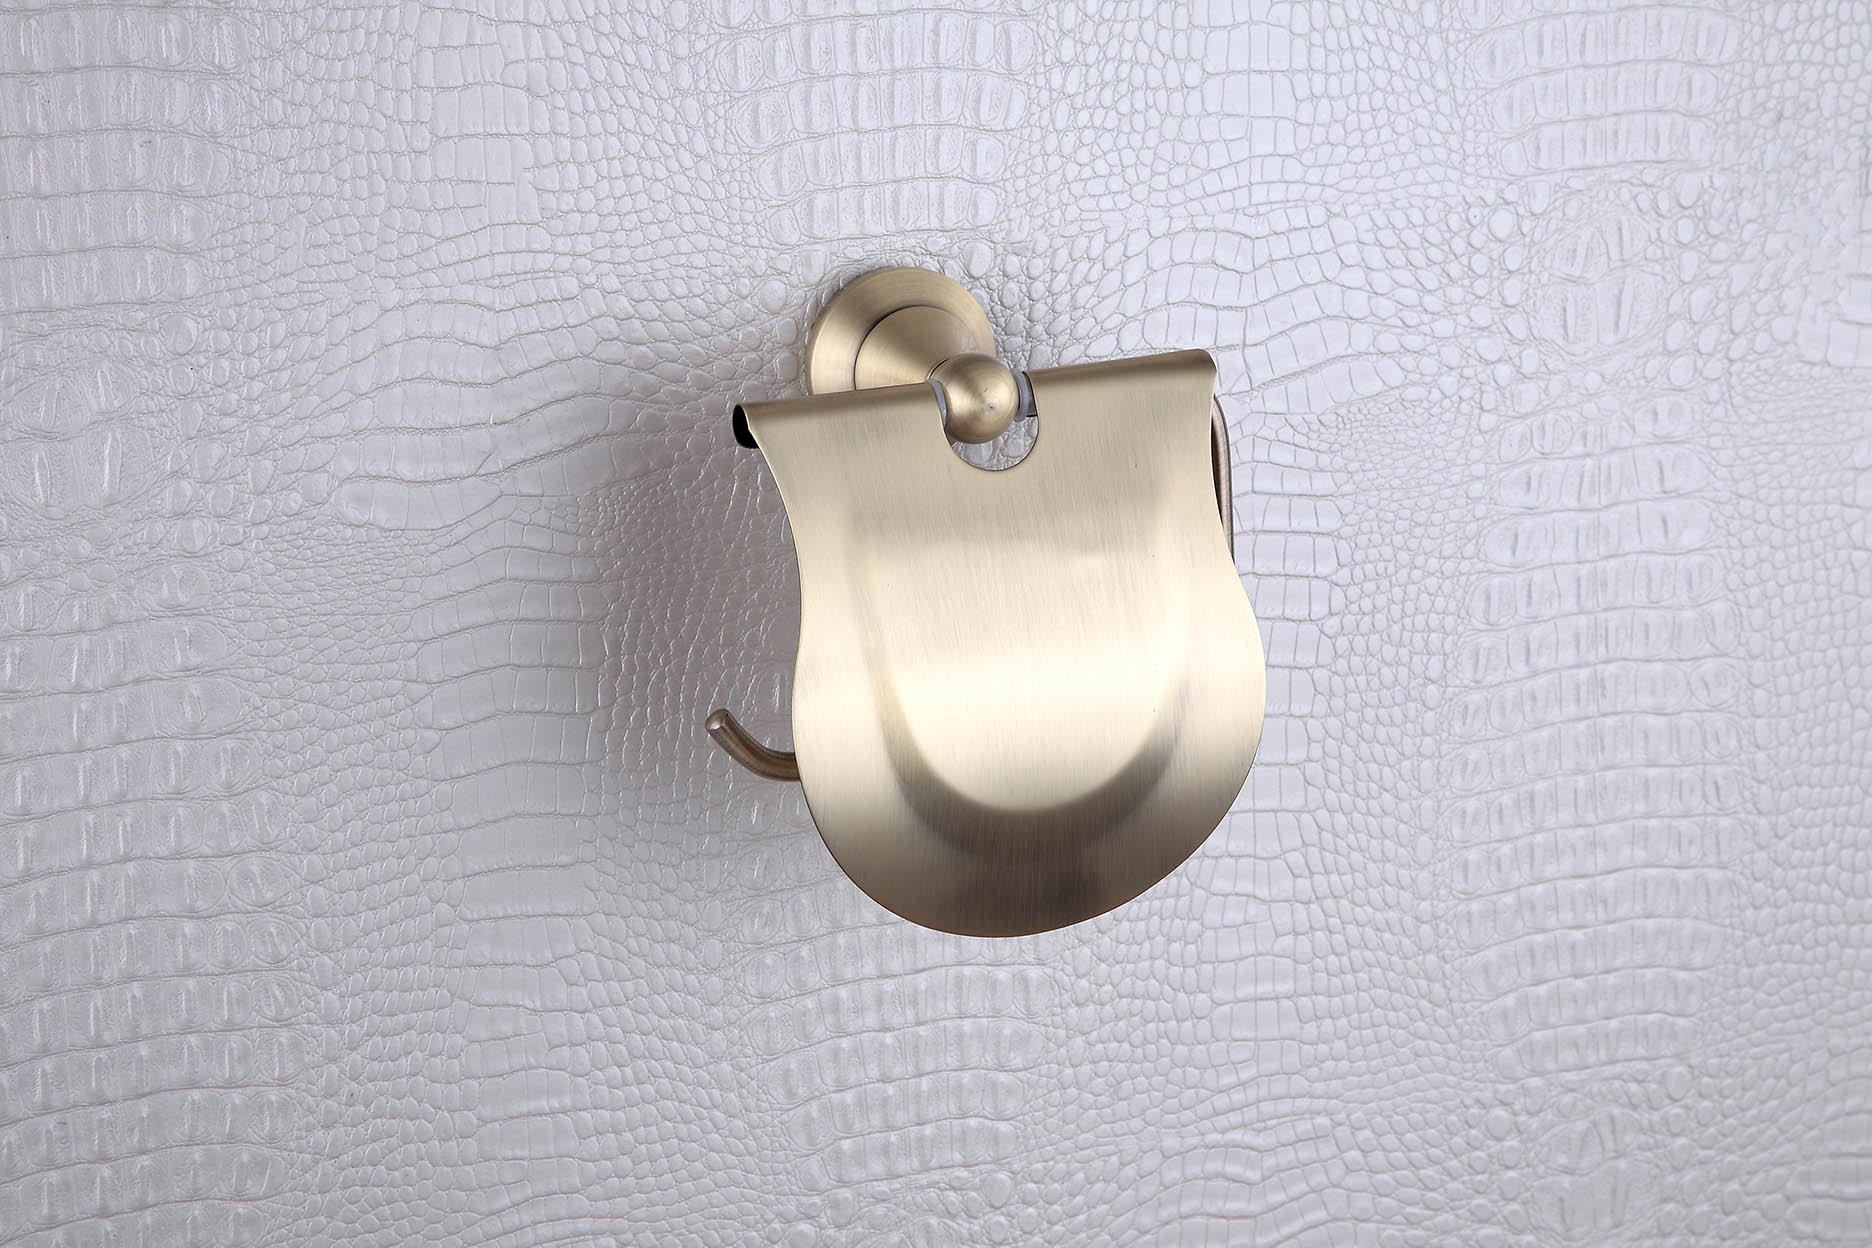 Cloud Power Vintage Style Brass Toilet Paper Holders With Chrome Wall-mounted